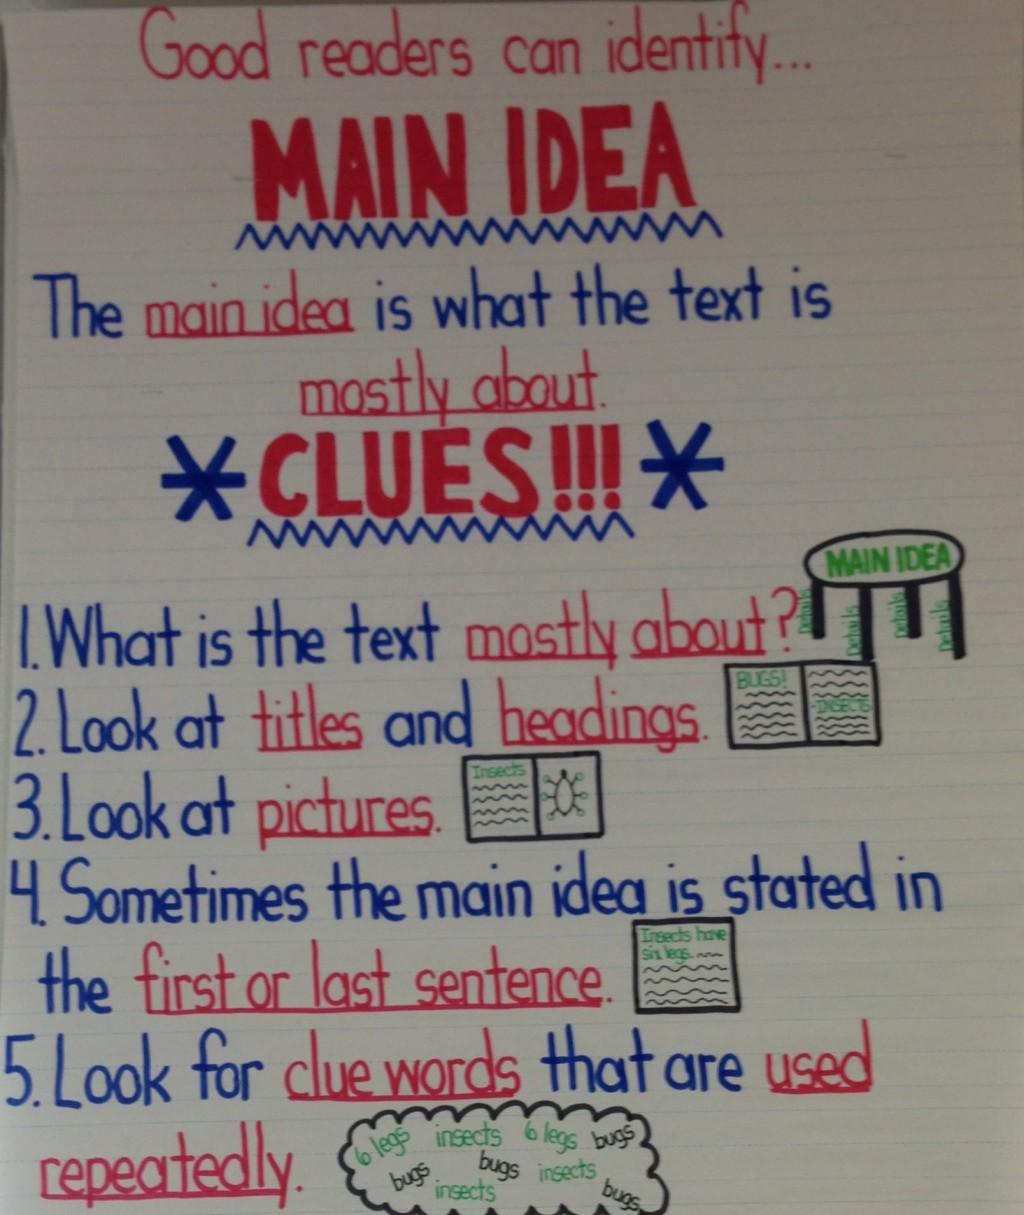 009 What Is The Main Idea Of Reads Essay I Pencil Wonderful Large